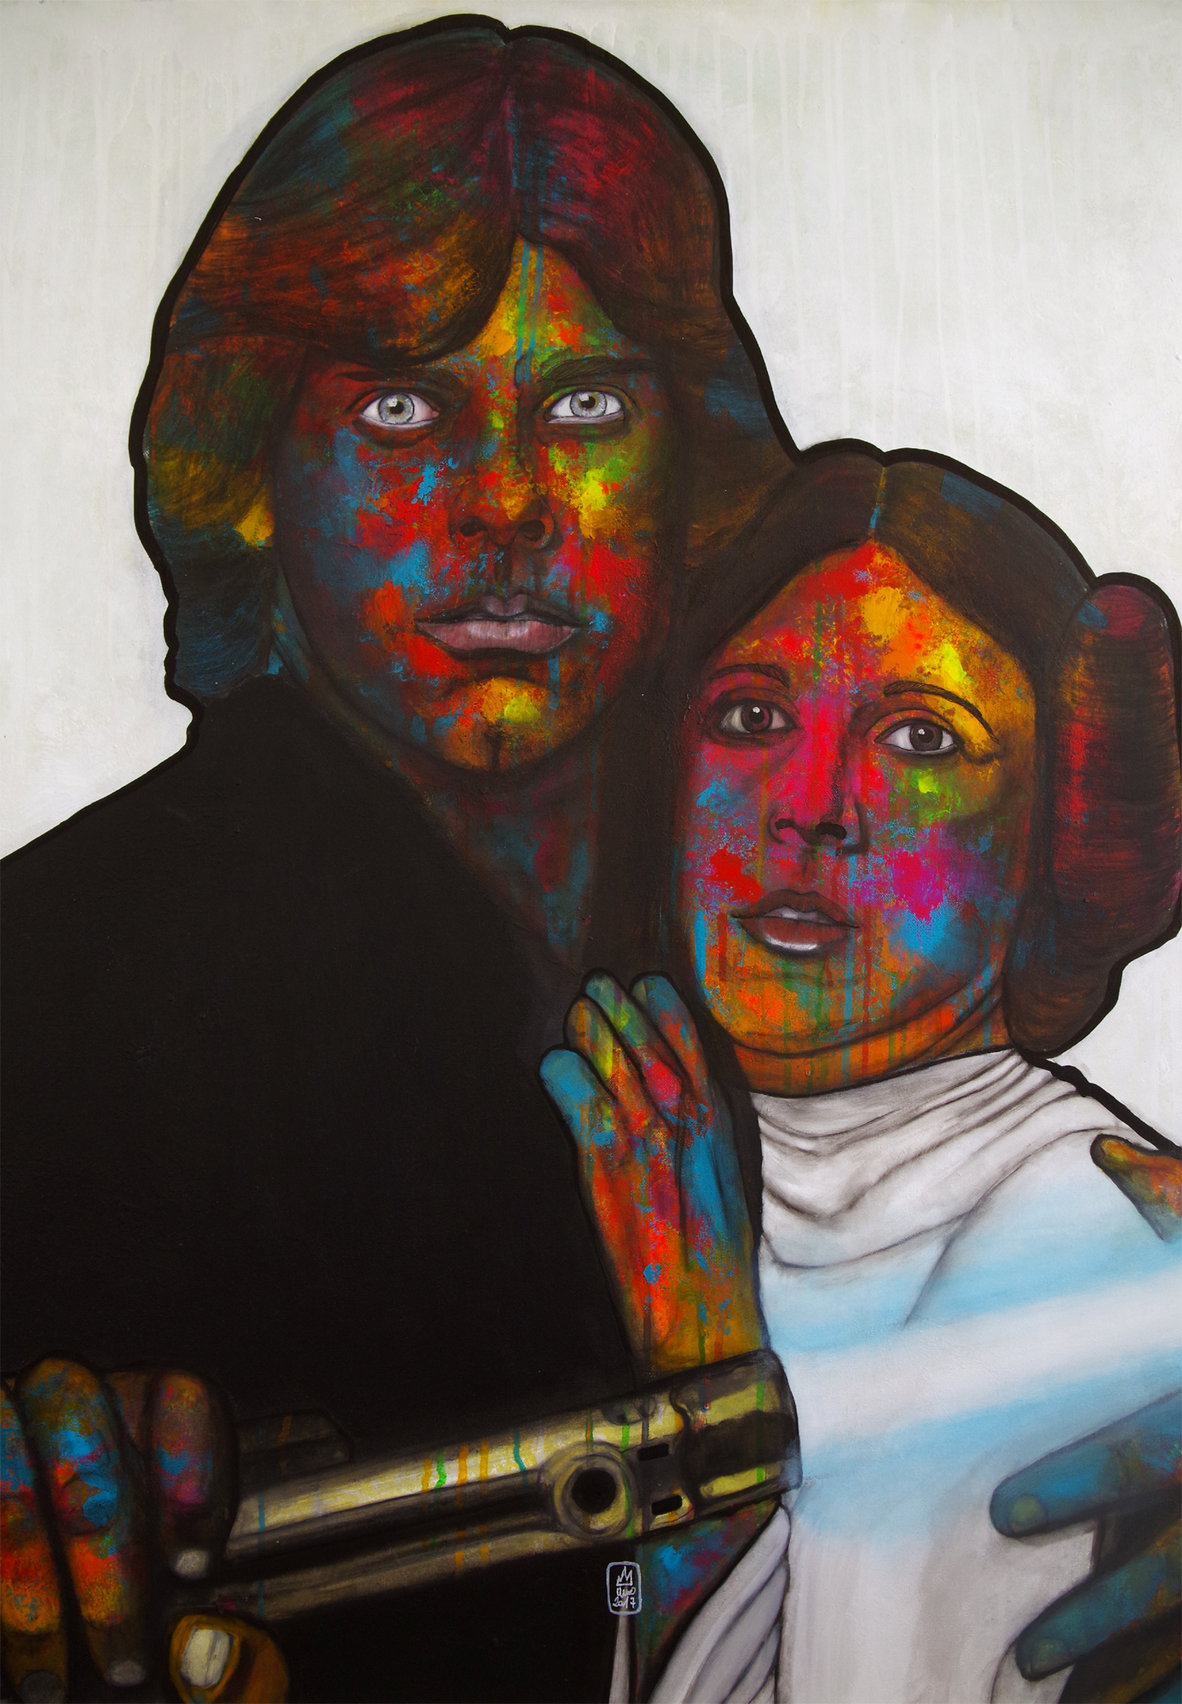 LUKE SKYWALKER & LEIA ORGANA-Star Wars